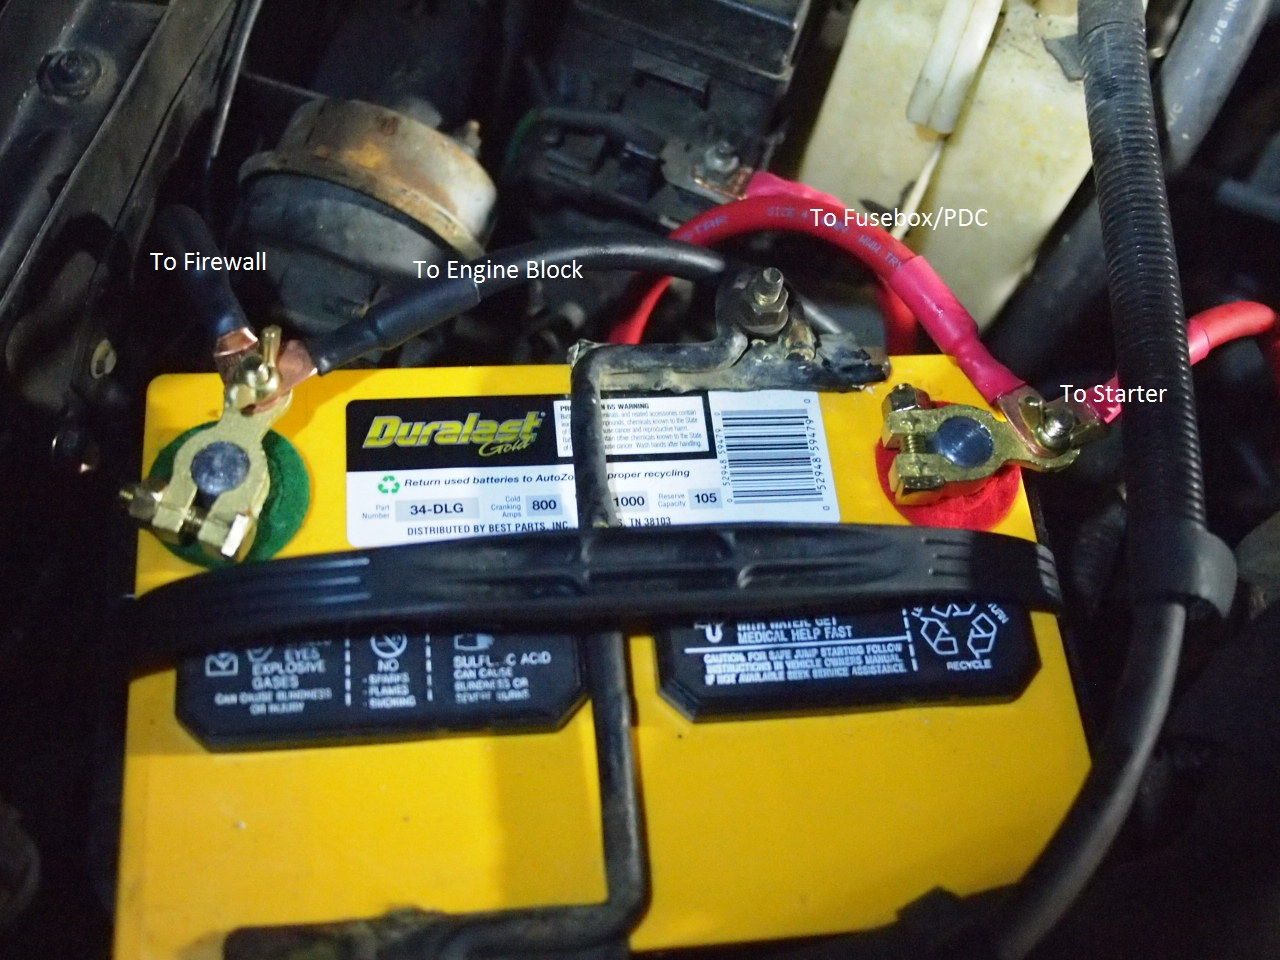 05 Lincoln Town Car Fuse Box Corroded Battery Cable Replacement Tons Of Pics Summary